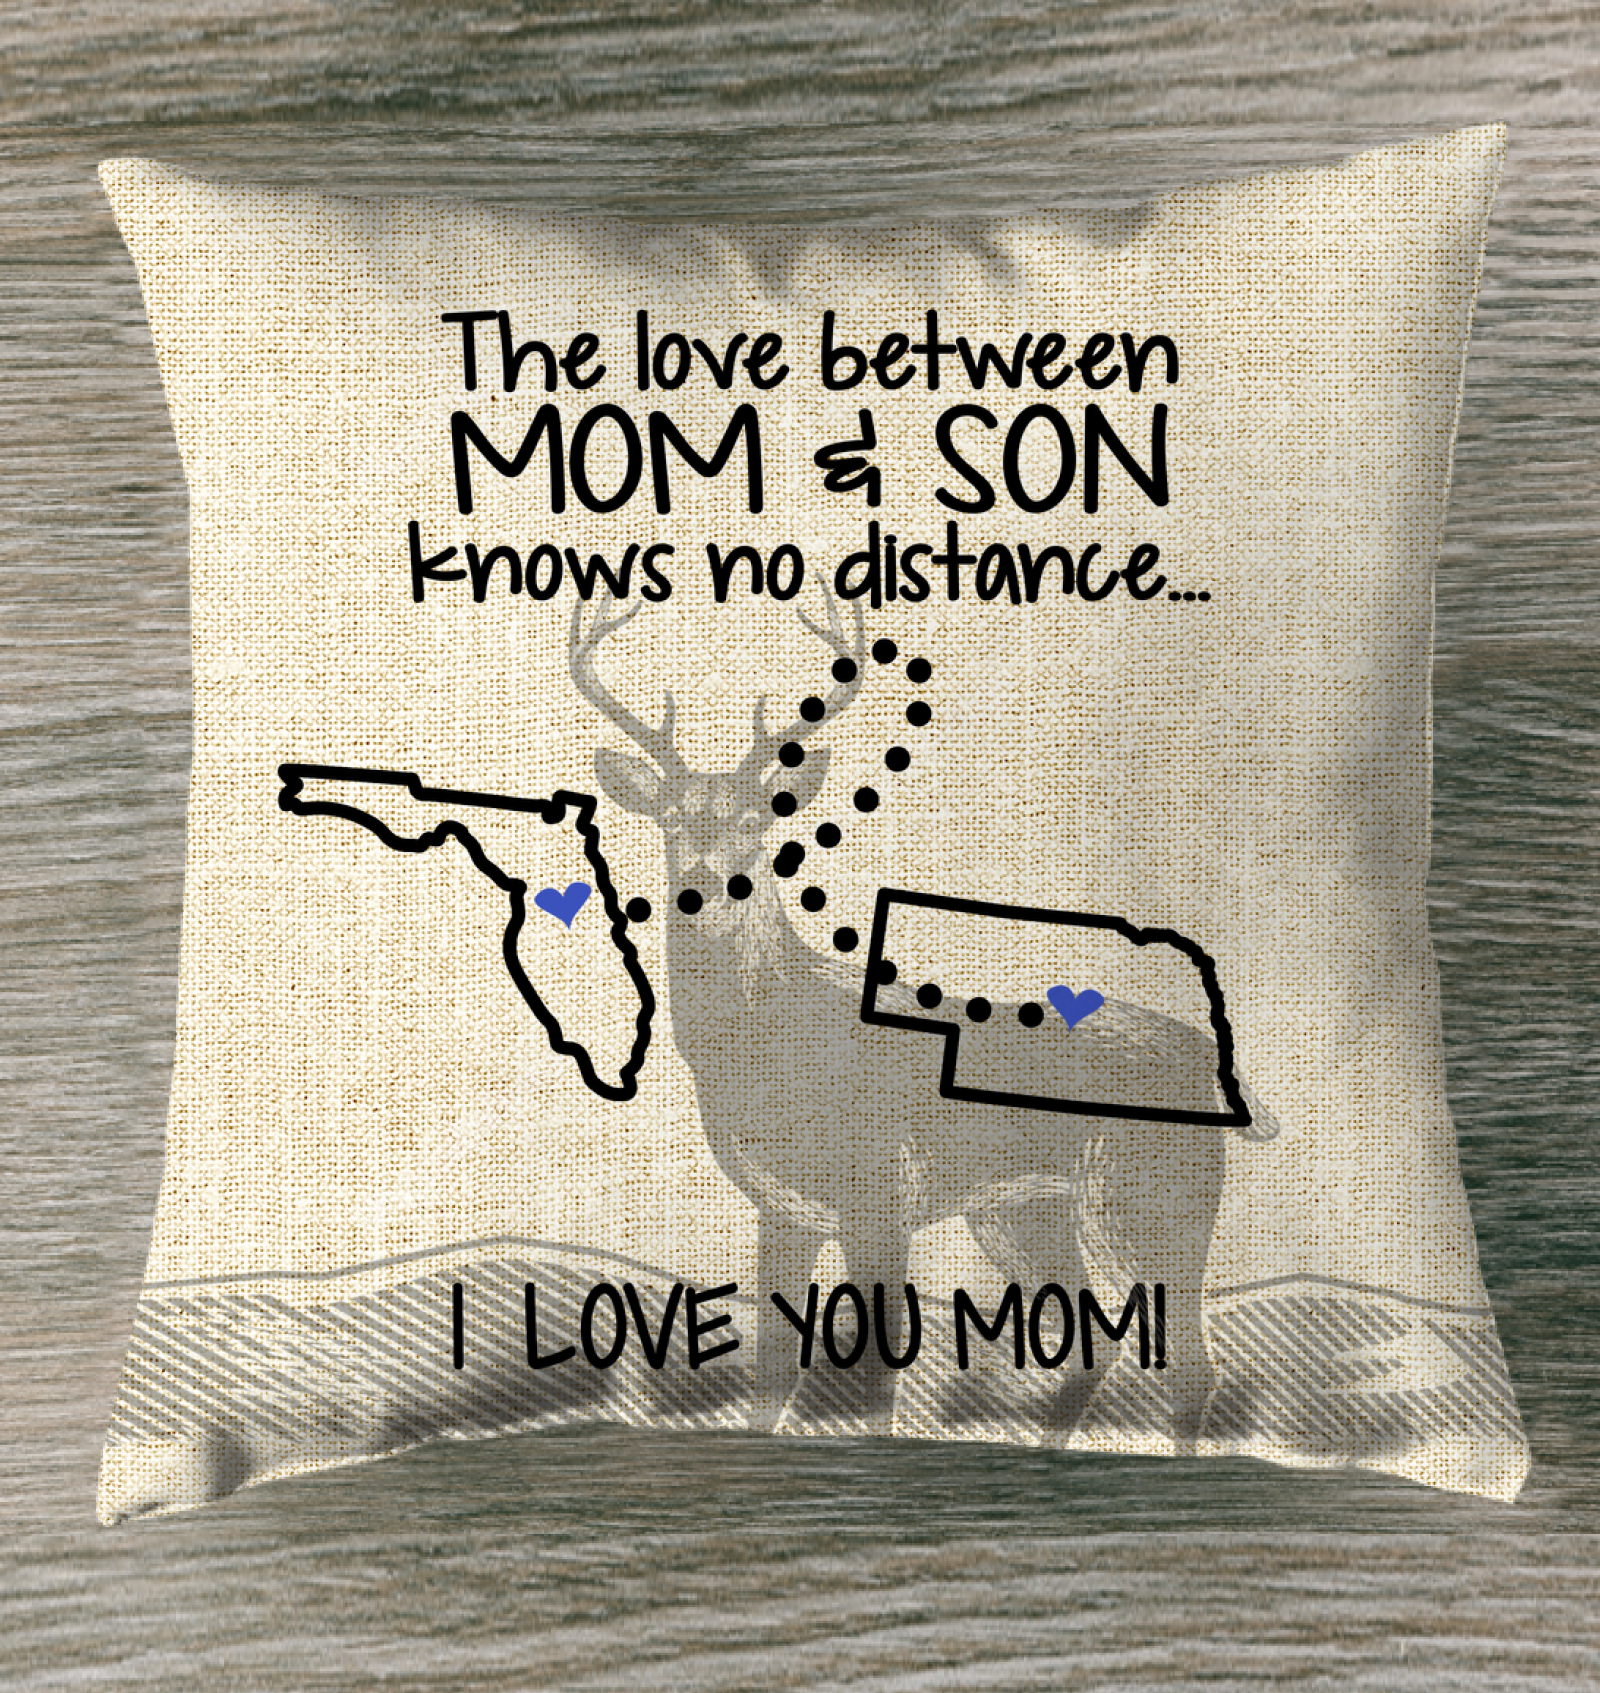 NEBRASKA FLORIDA THE LOVE MOM AND SON KNOWS NO DISTANCE